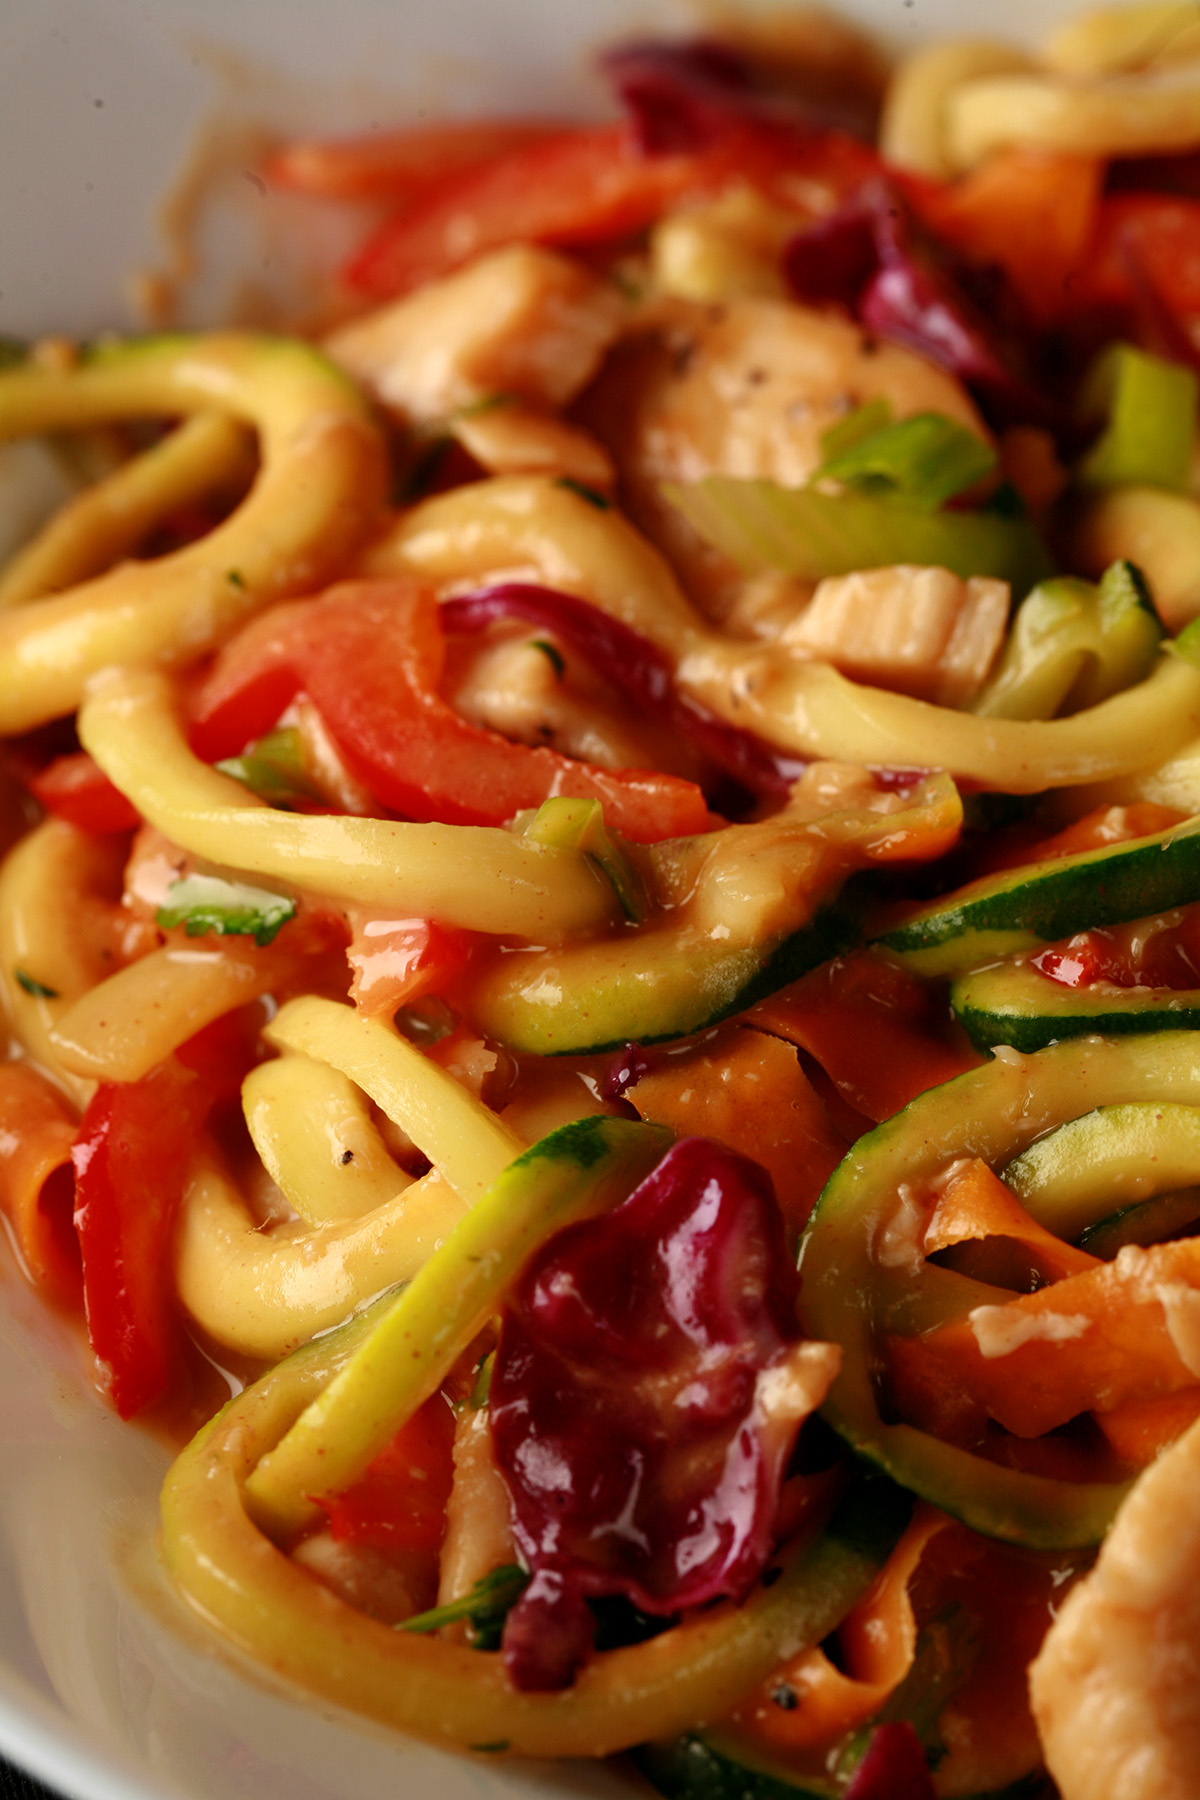 A close up view of a colourful low carb peanut chicken zoodles dish - zucchini noodles, purple cabbage, carrot strups, thinly sliced red pepper, green onions, and cilantro, in a translucent peanut sauce.